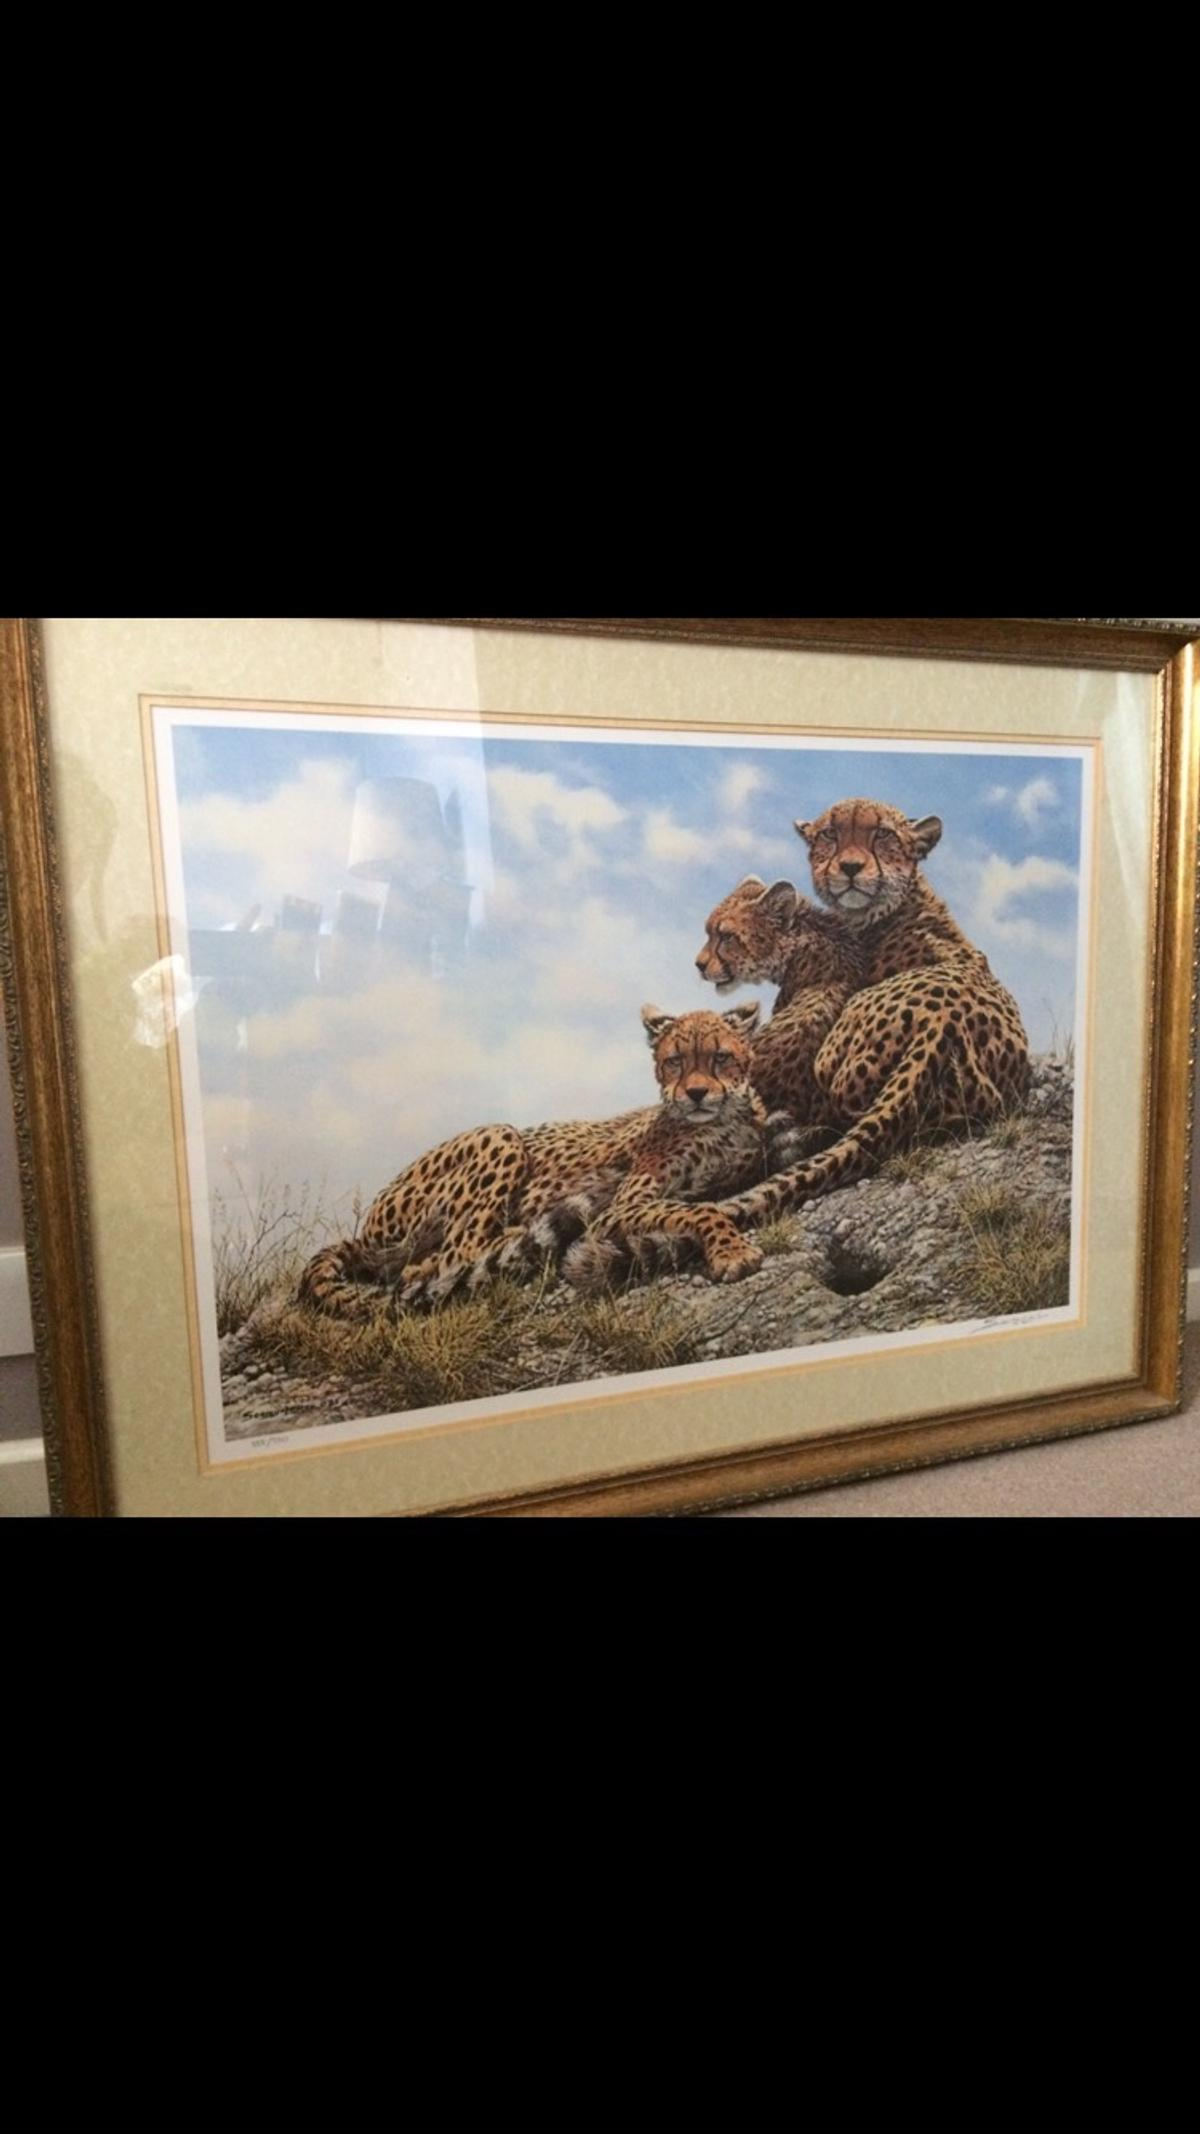 """Kenyan family artist John Seerey-Lester limited edition image size 20"""" x 30"""" unwanted Christmas gift have certificate of authenticity was £250.00"""